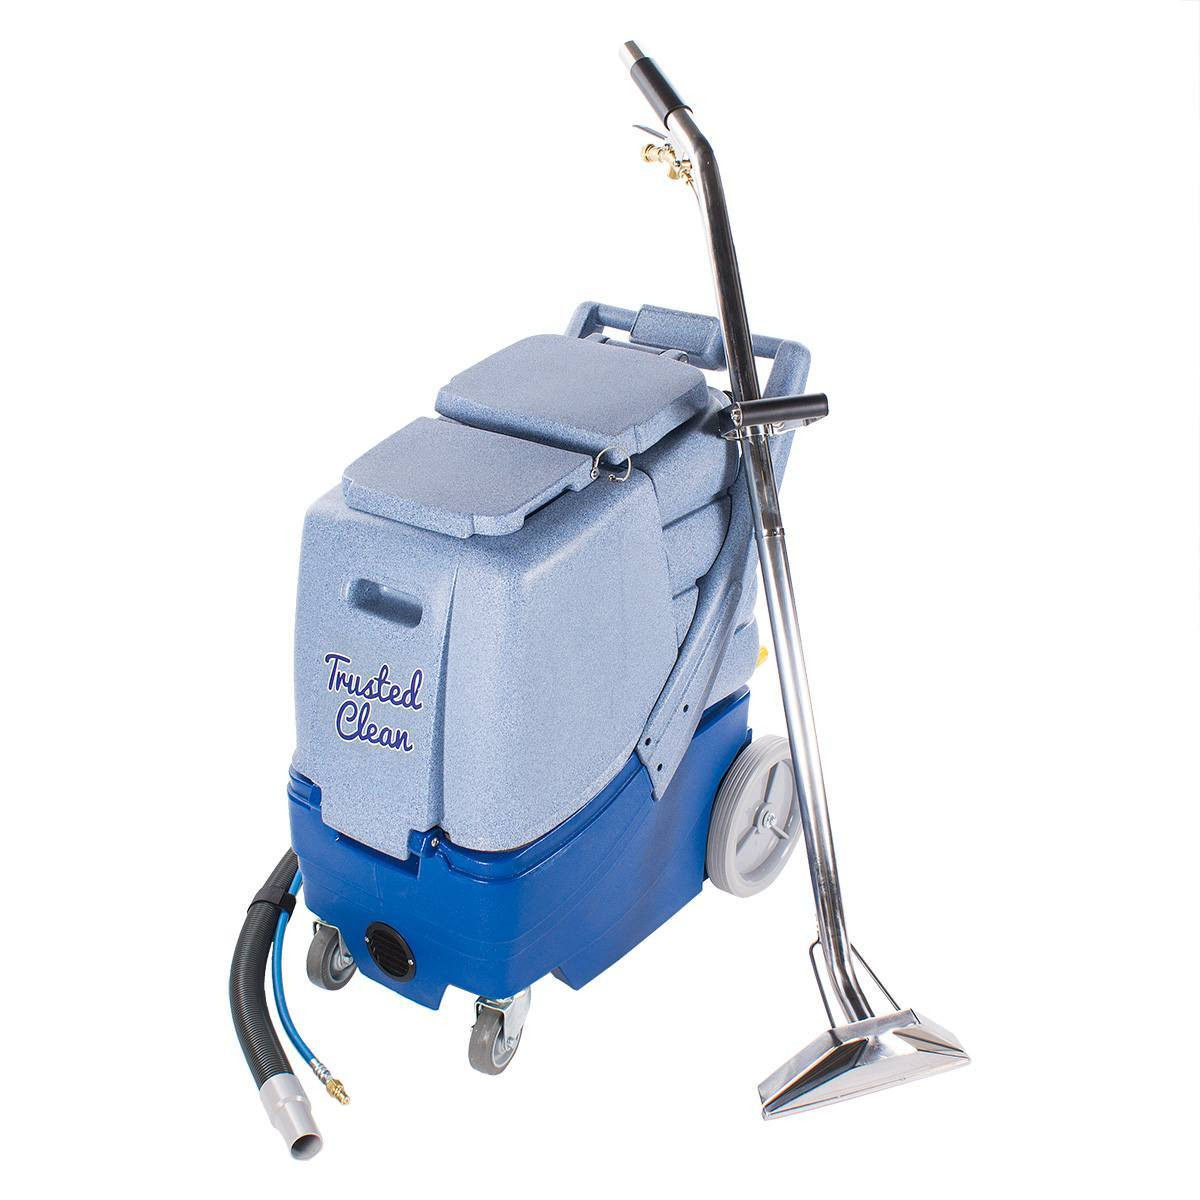 Carpet Cleaning Vacuum Trusted Clean Supreme 500 Psi Carpet Cleaning Machine W Wand